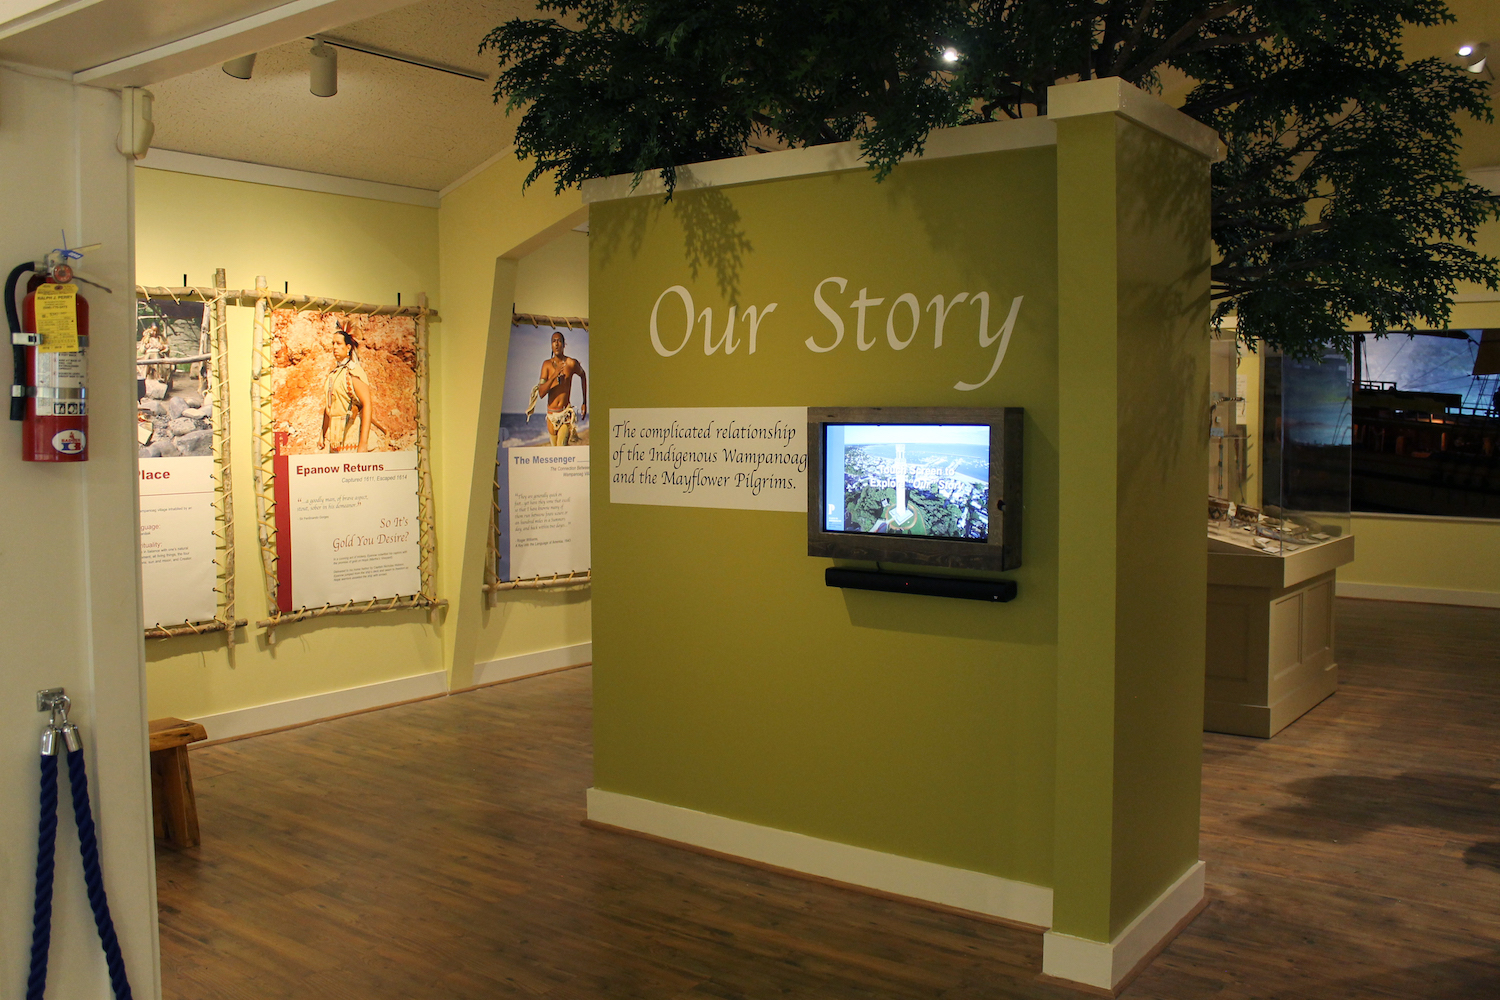 Our Story Exhibition